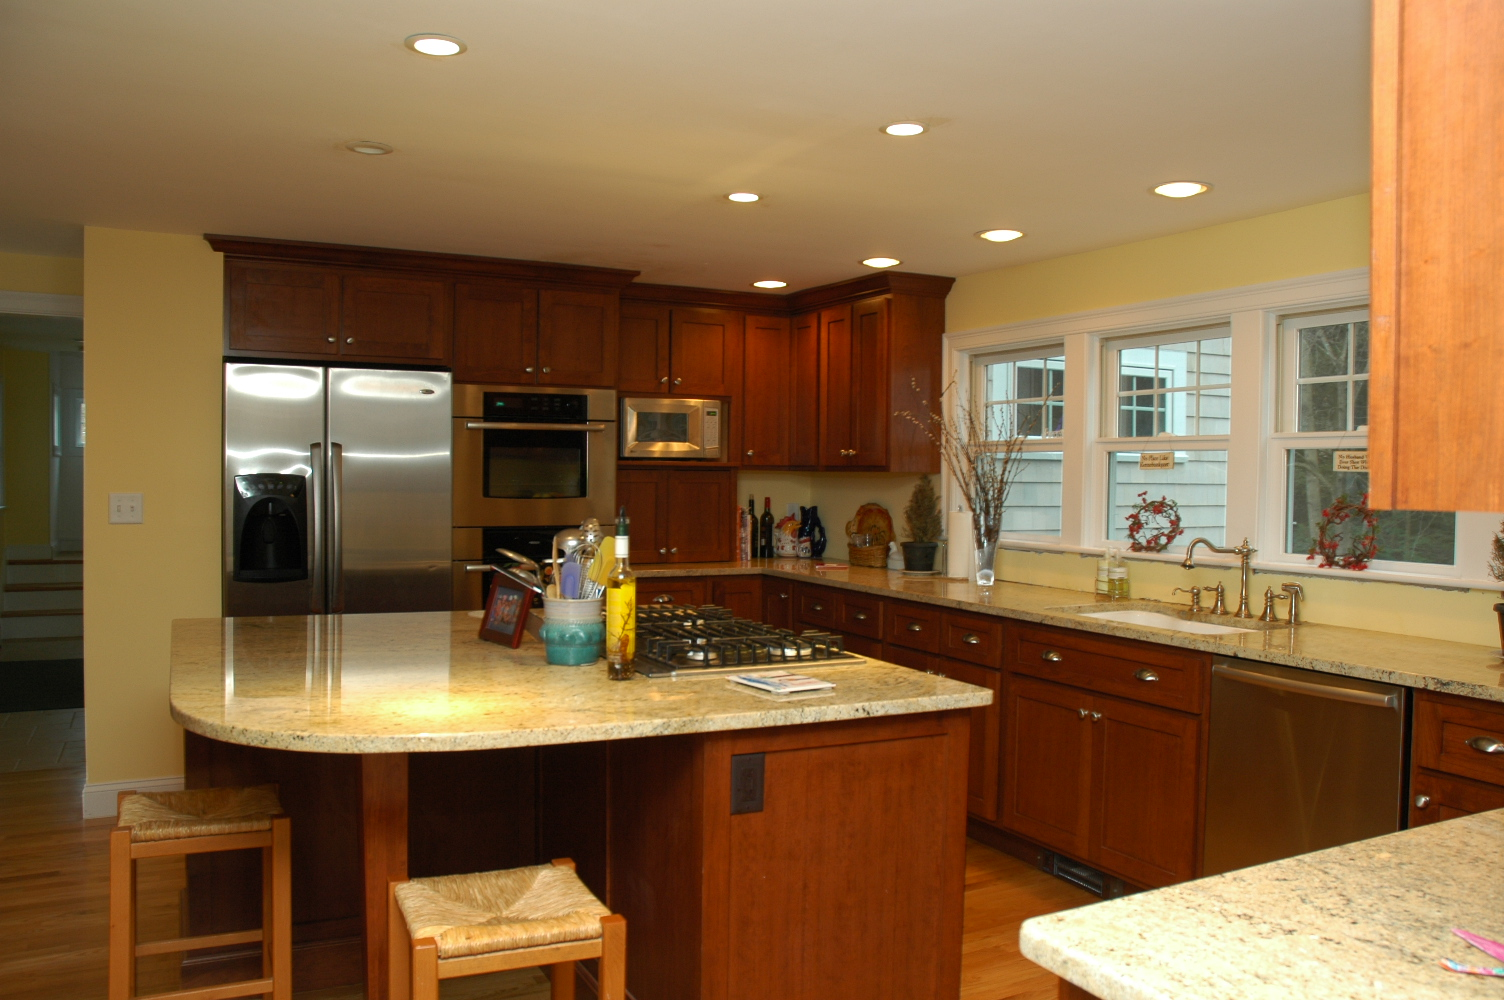 Large-Kitchen-Island-with-Marble-Table-and-Two-Wooden-Chair-also-Wooden-Kitchen-Cabinets-and-Laminat